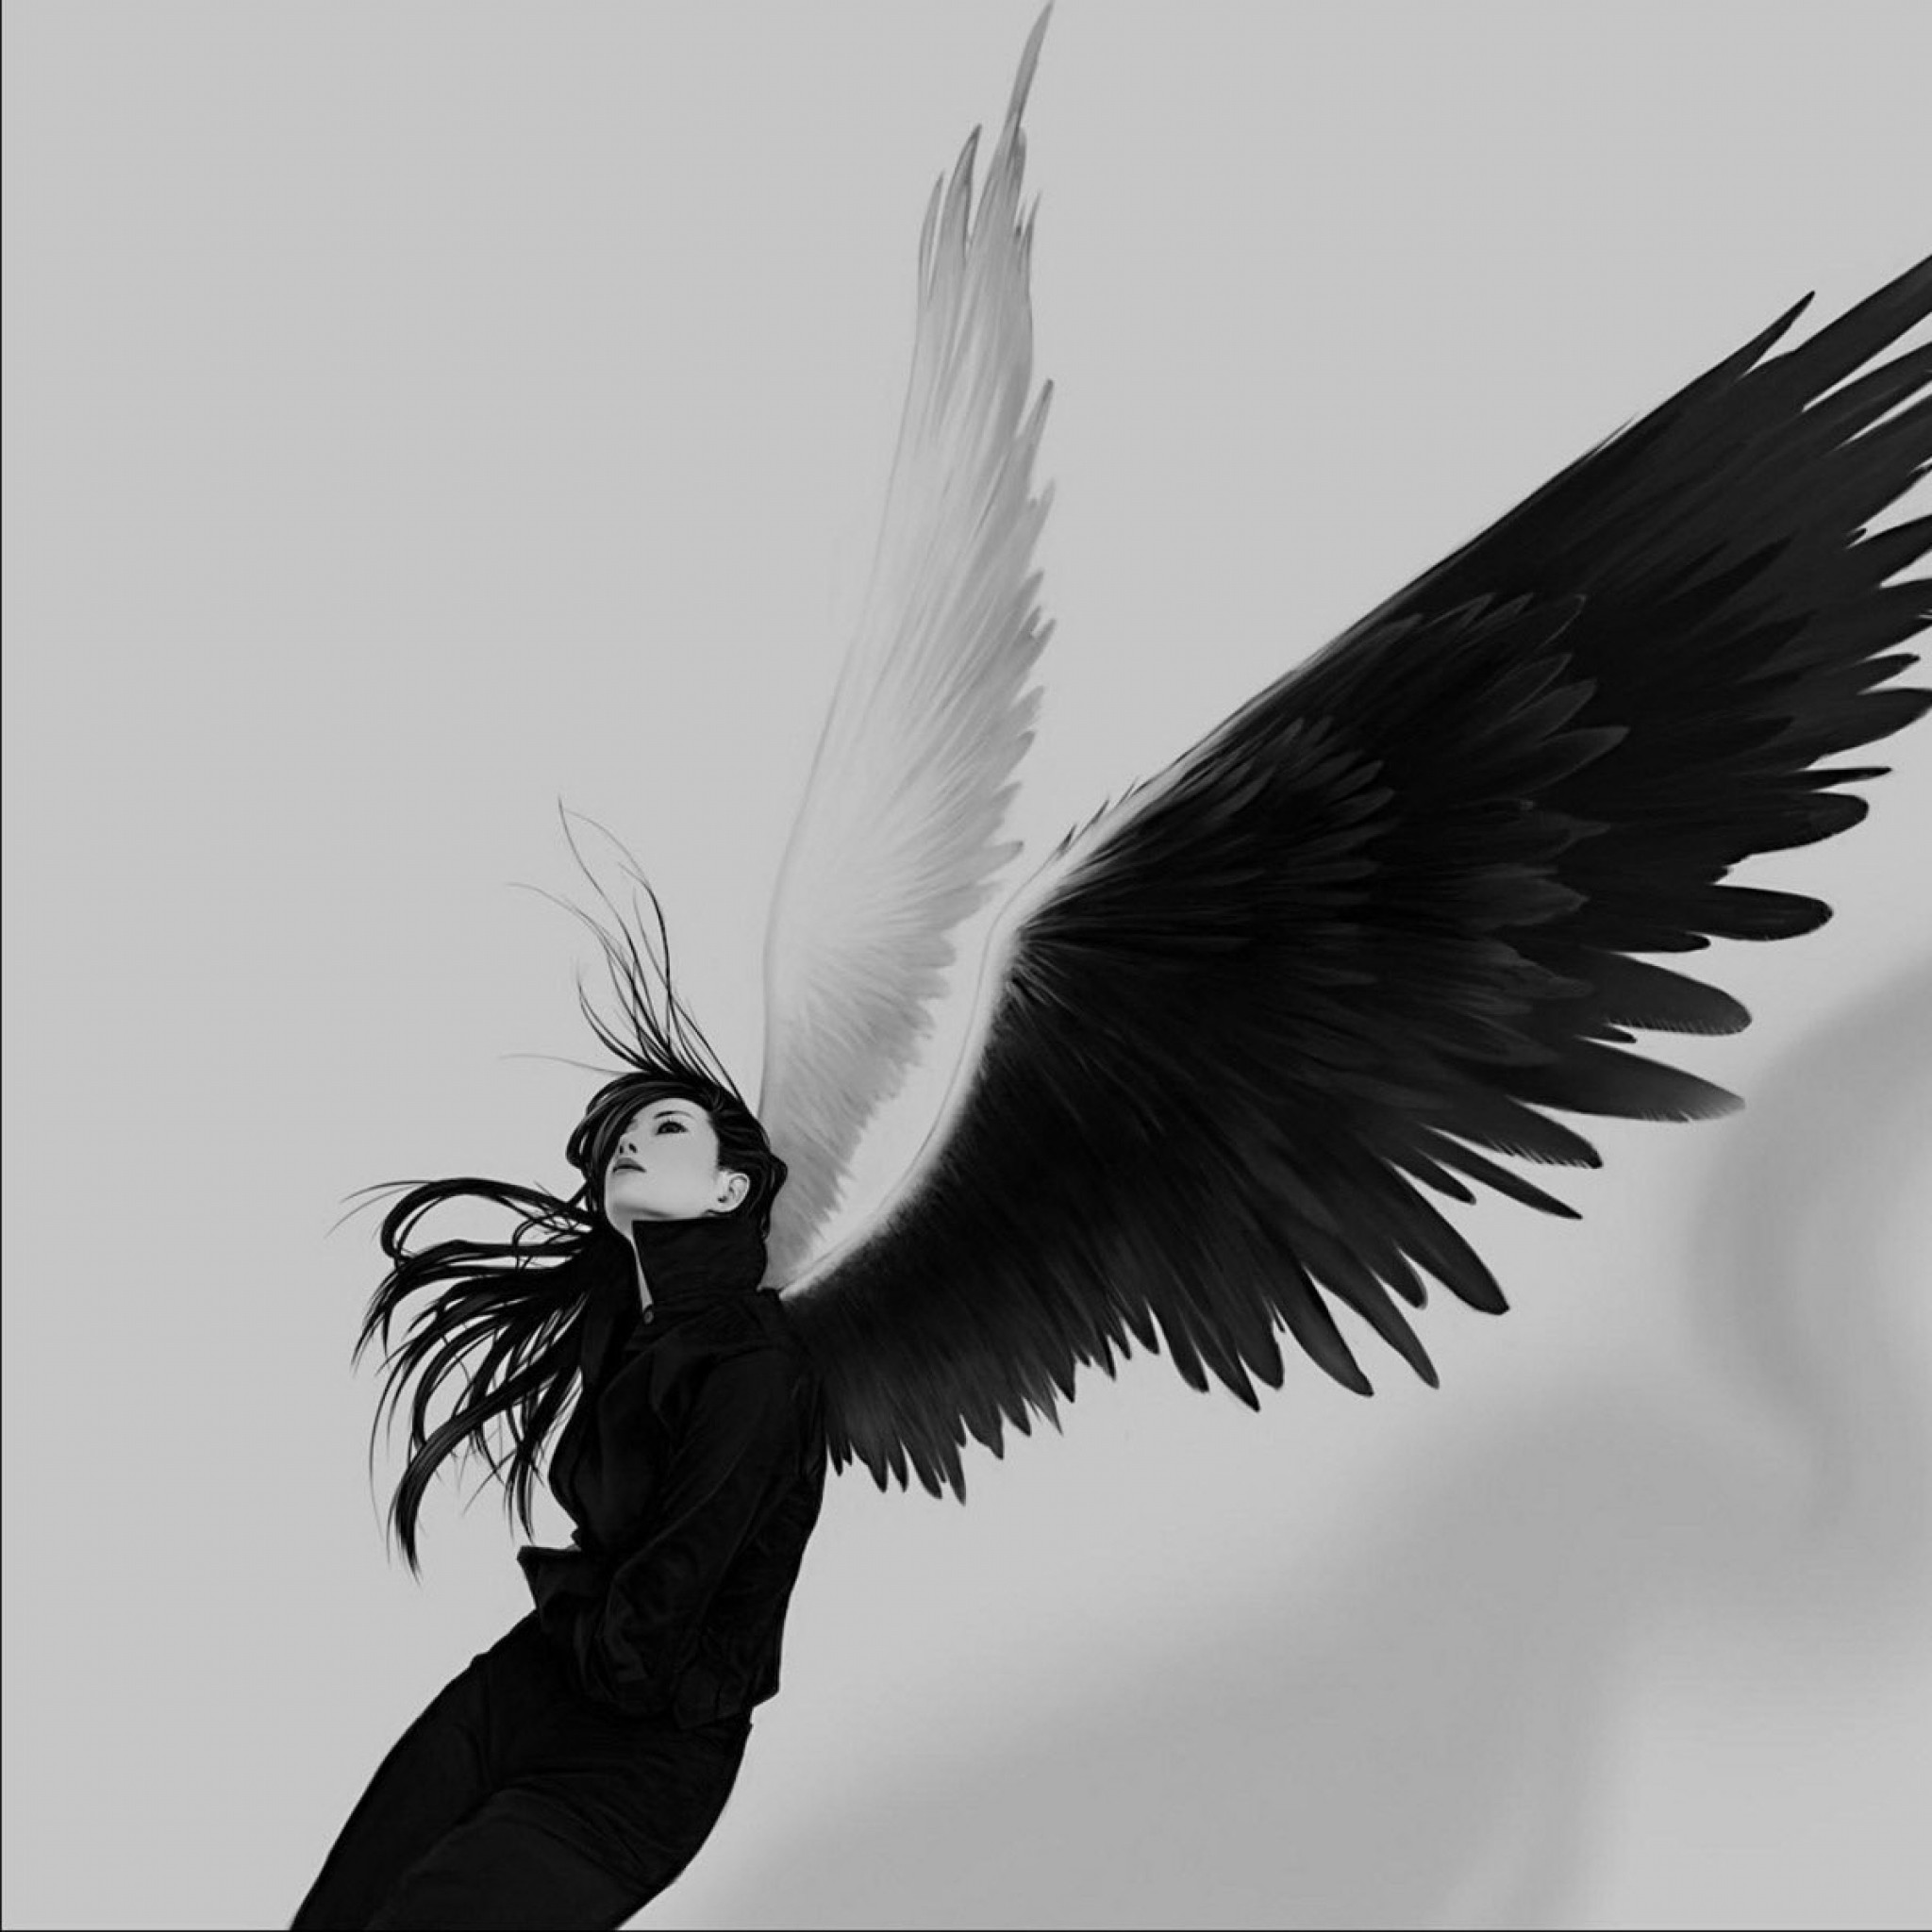 Wallpaper Angel Wings 81 images 2048x2048